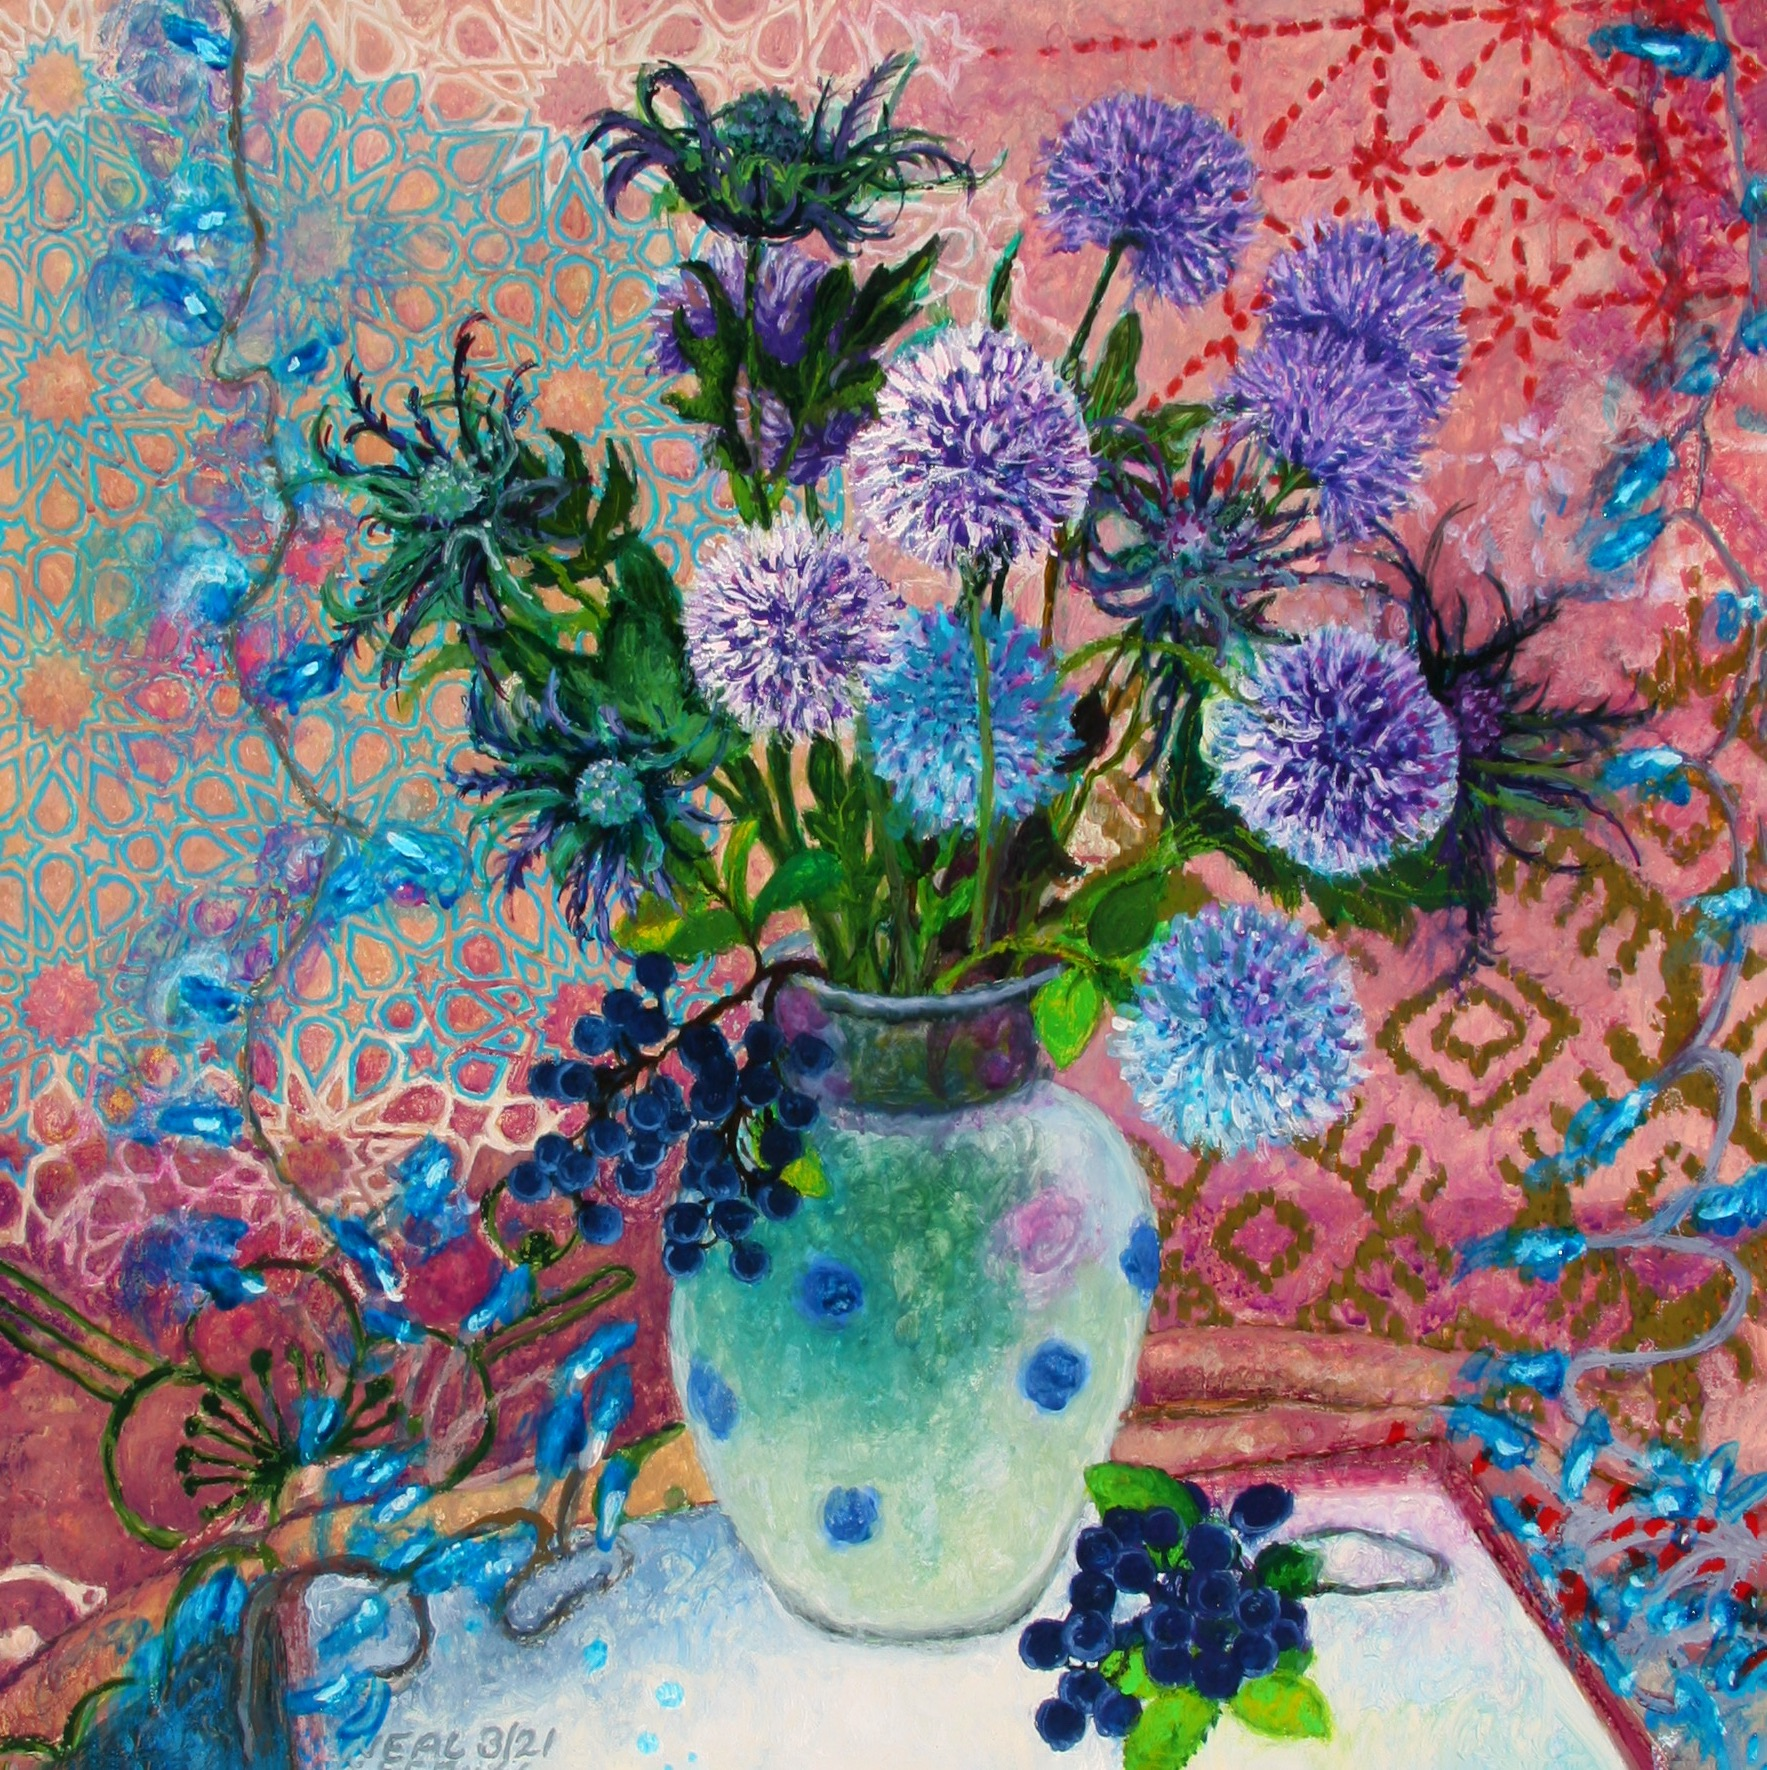 Blue and purple flowers in a vase with a patterned ground